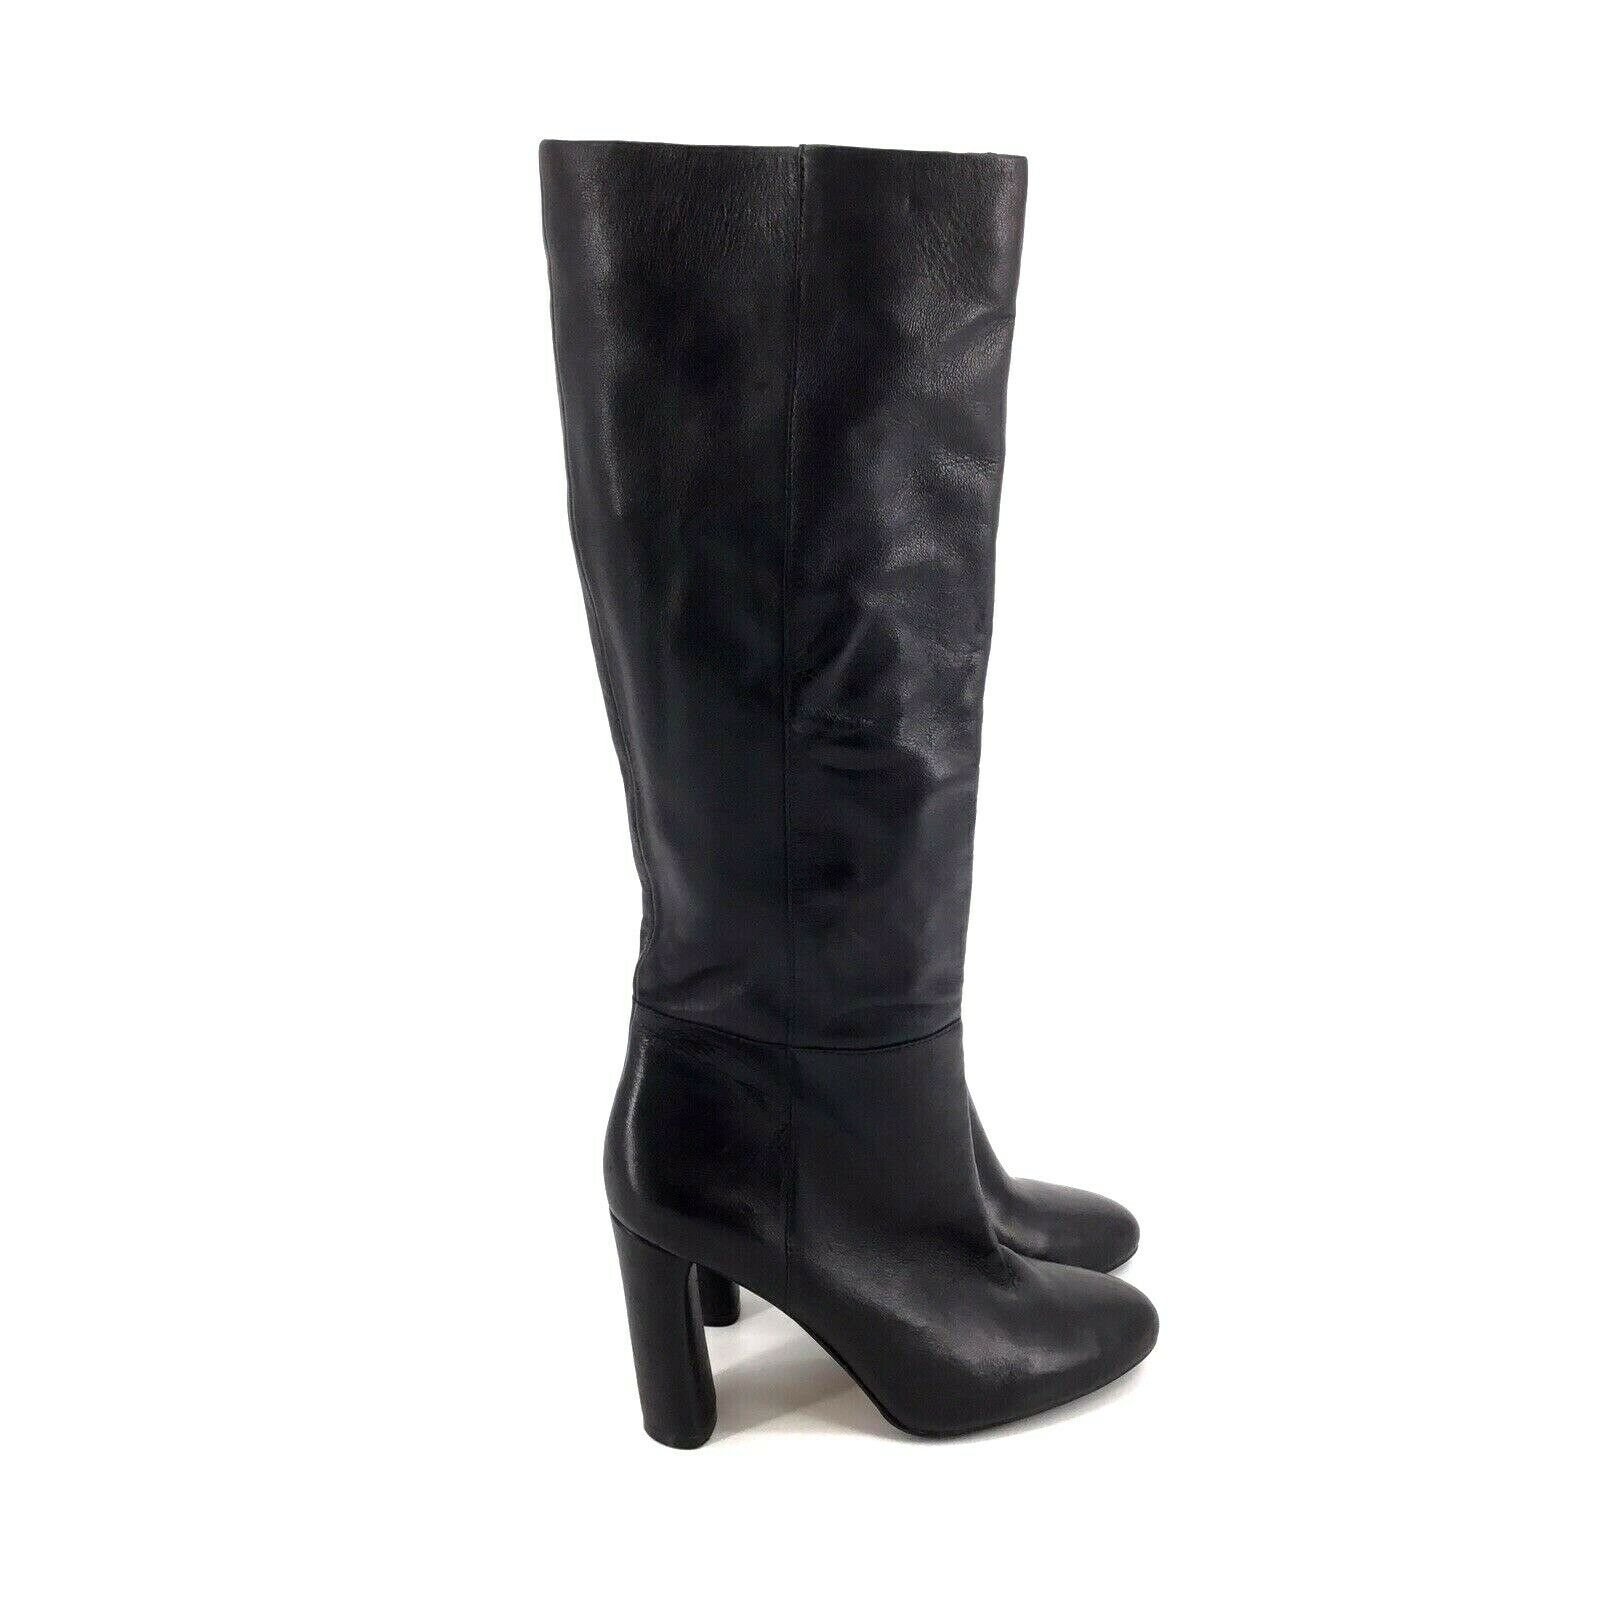 Vince Camuto Femmie Black Leather Tall Shaft Boots Womens Size 7 US - NWOB